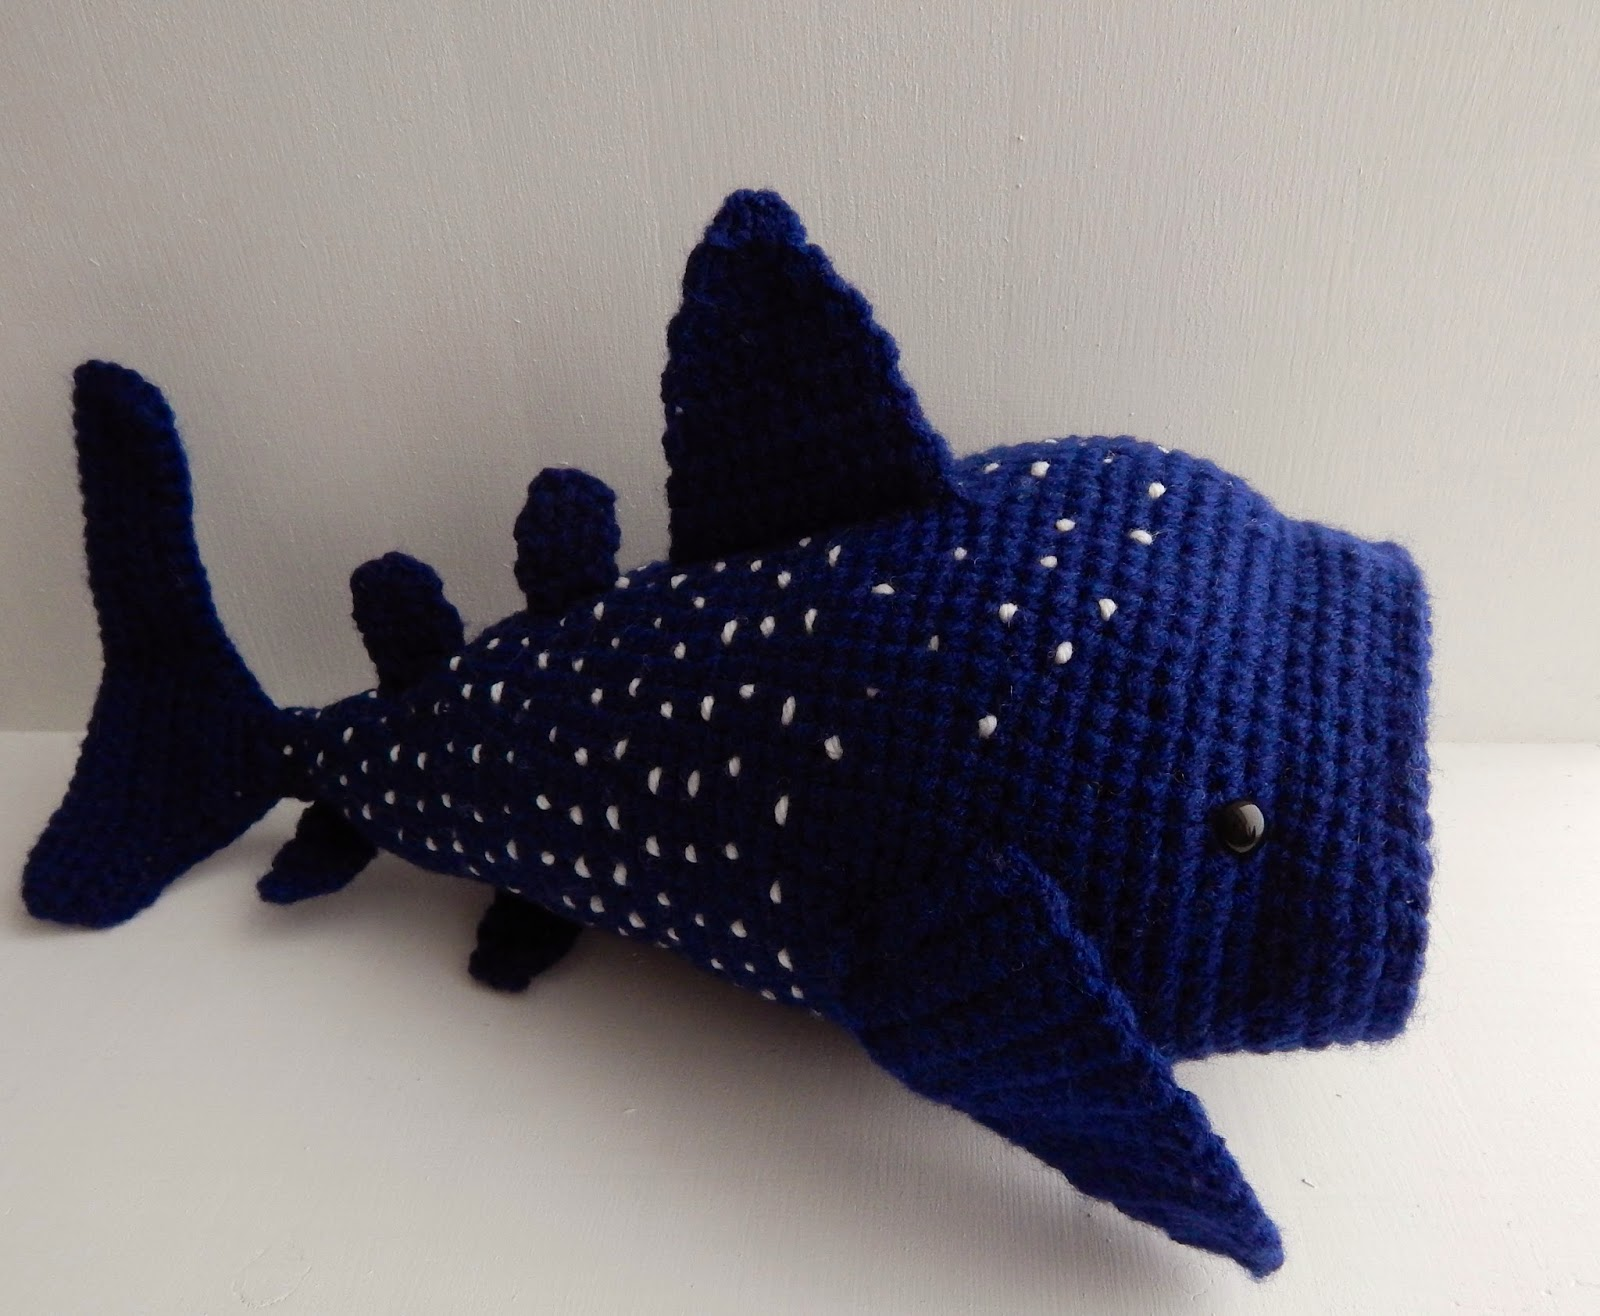 Amigurumi Shark Crochet Pattern : Sea Creatures to Crochet free patterns Grandmothers ...